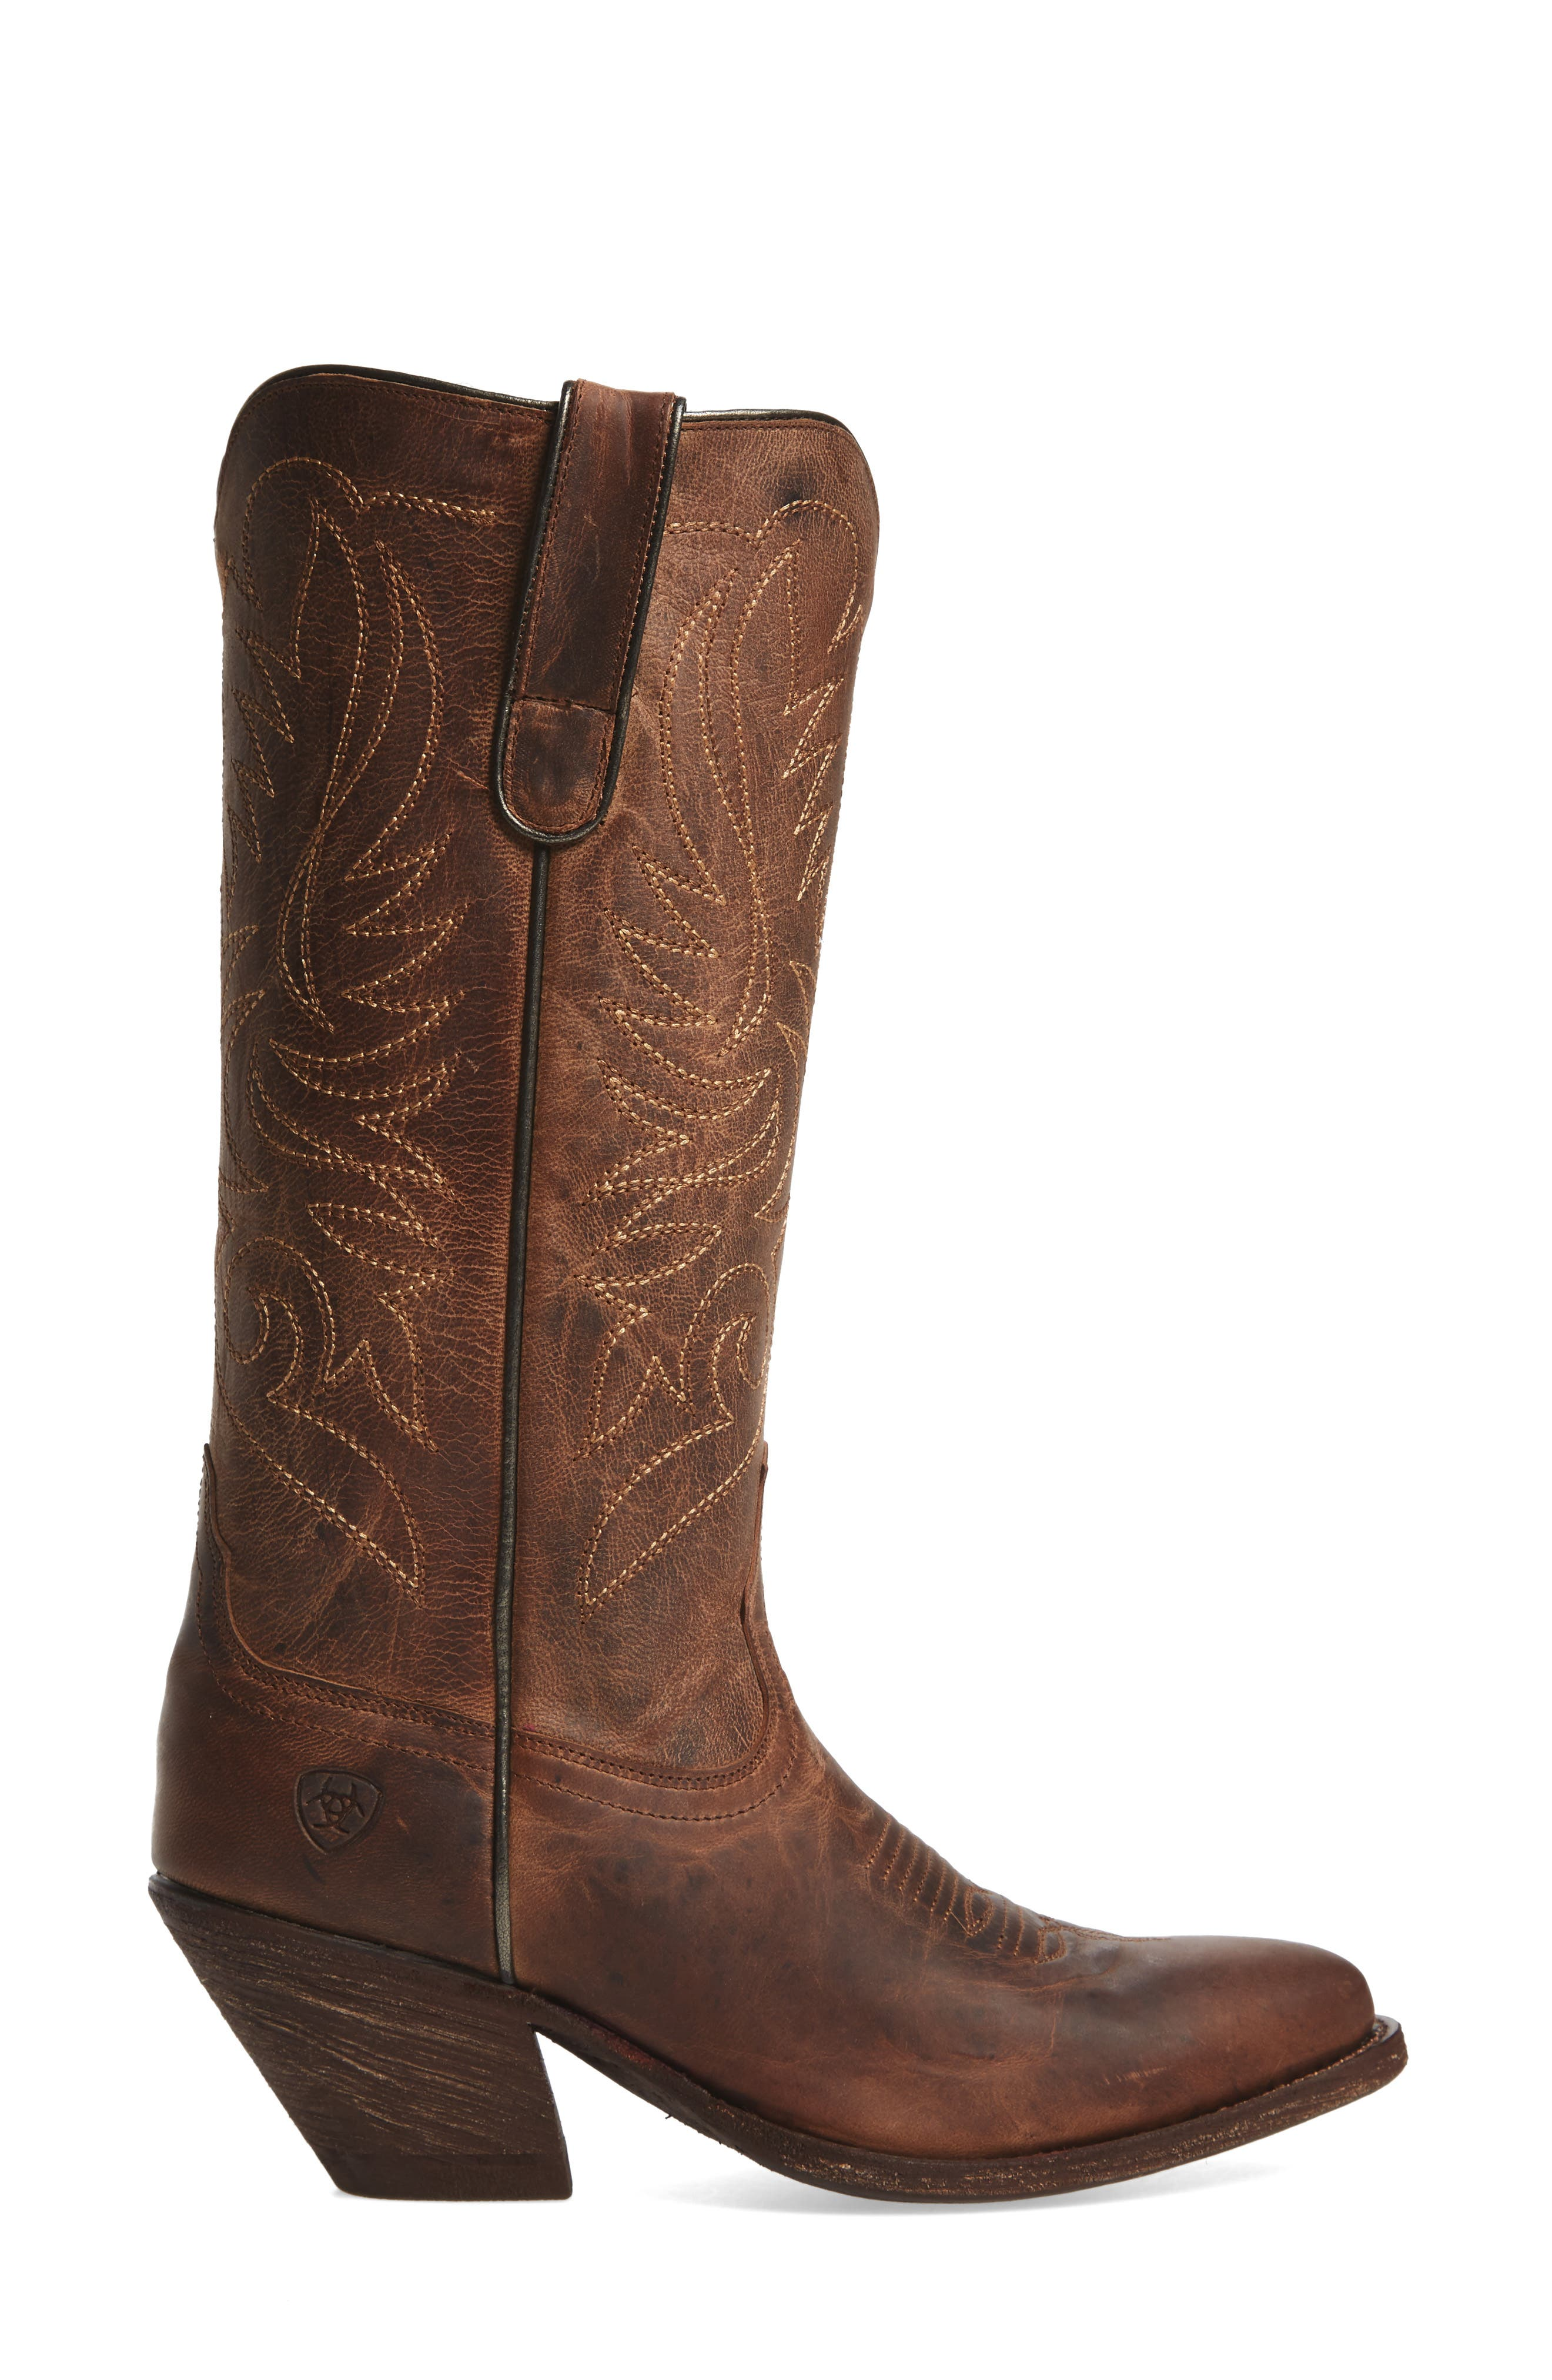 Shindig Western Boot,                             Alternate thumbnail 3, color,                             Weathered Tan Leather